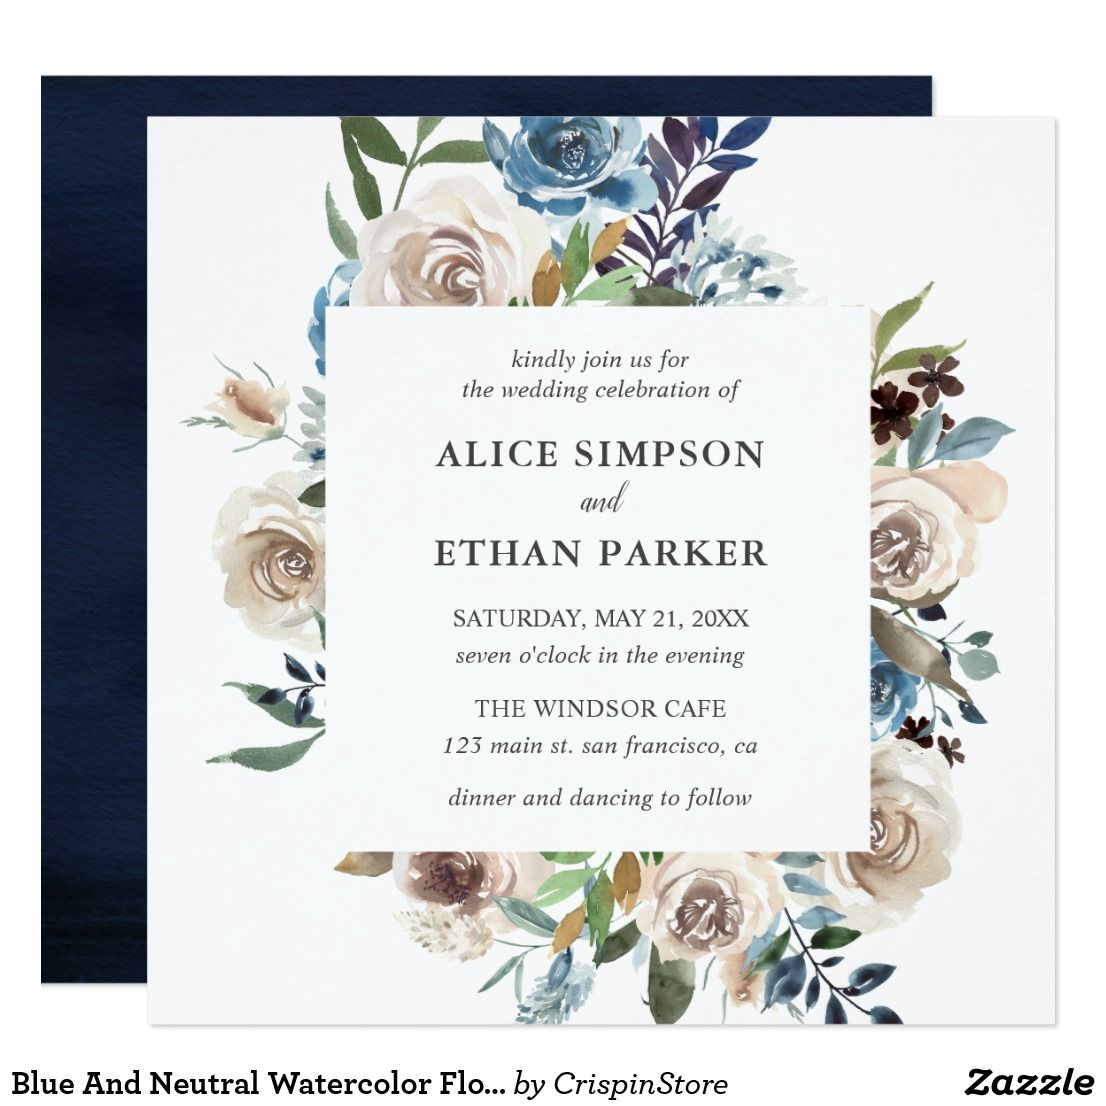 Our Elegant Square Wedding Invitation Features Watercolor Floral